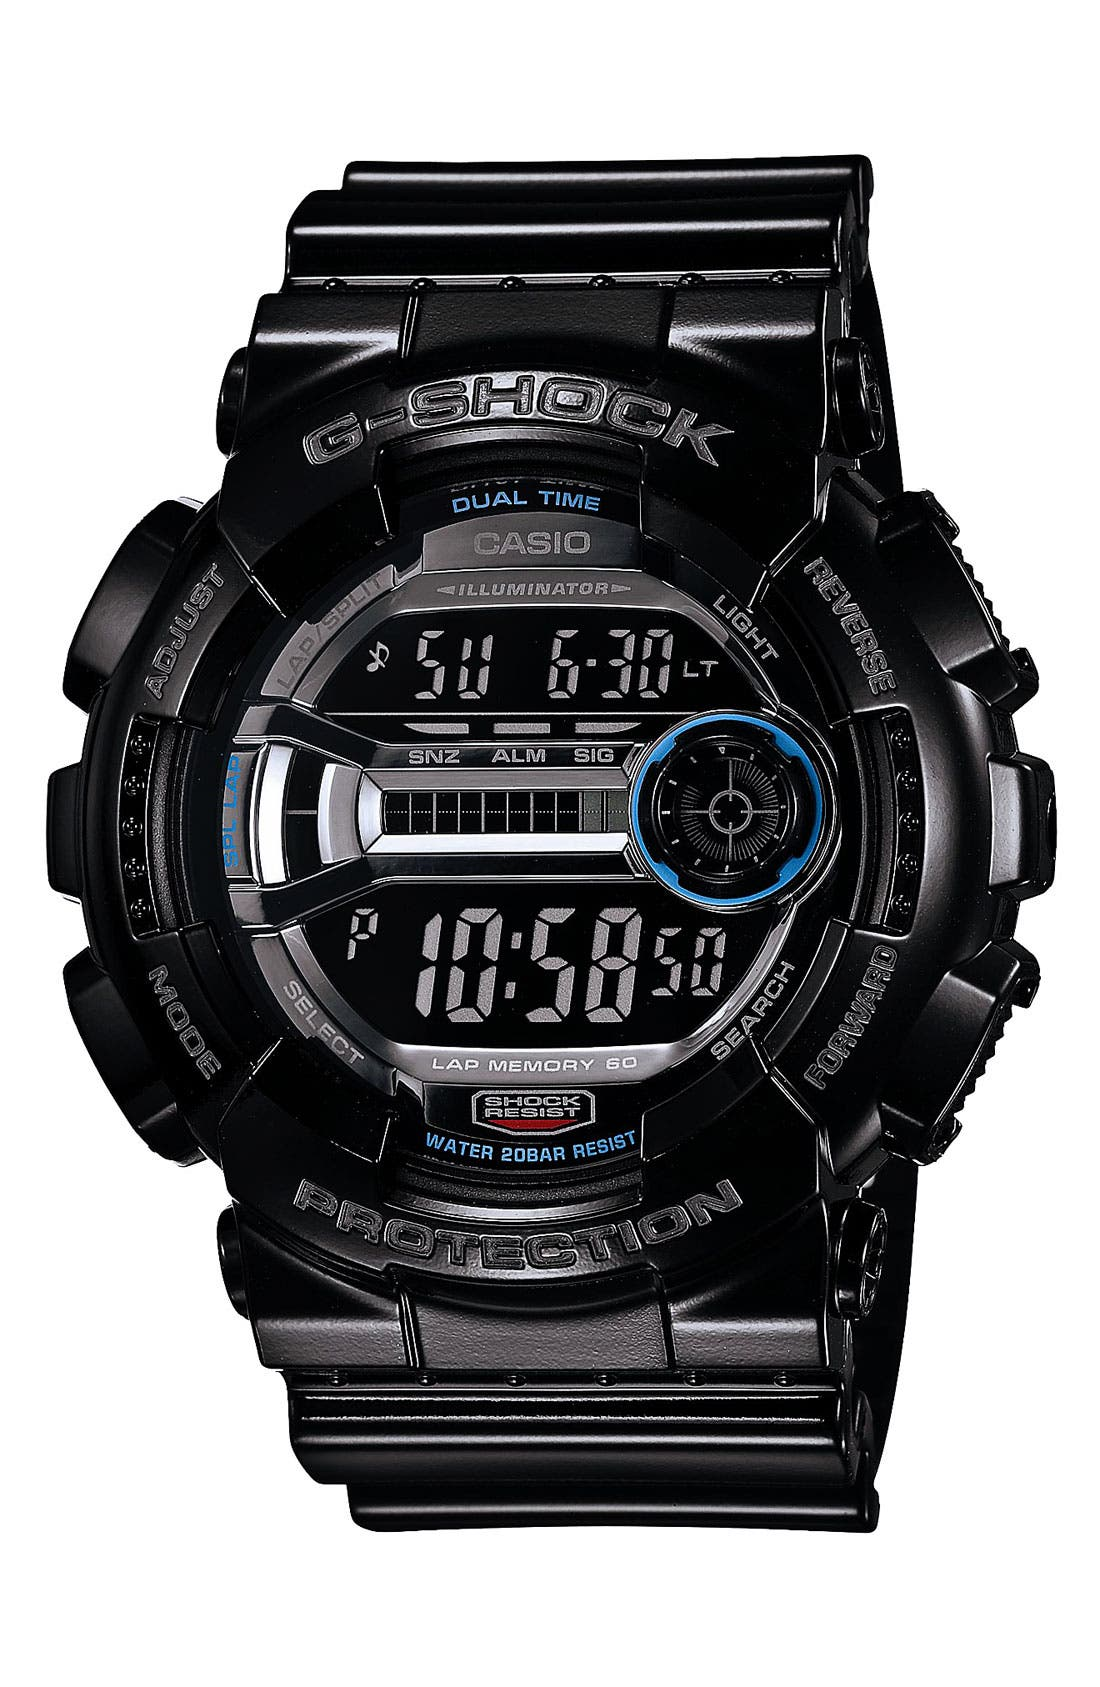 Alternate Image 1 Selected - G-Shock 'X-Large' Digital Watch, 55mm x 51mm